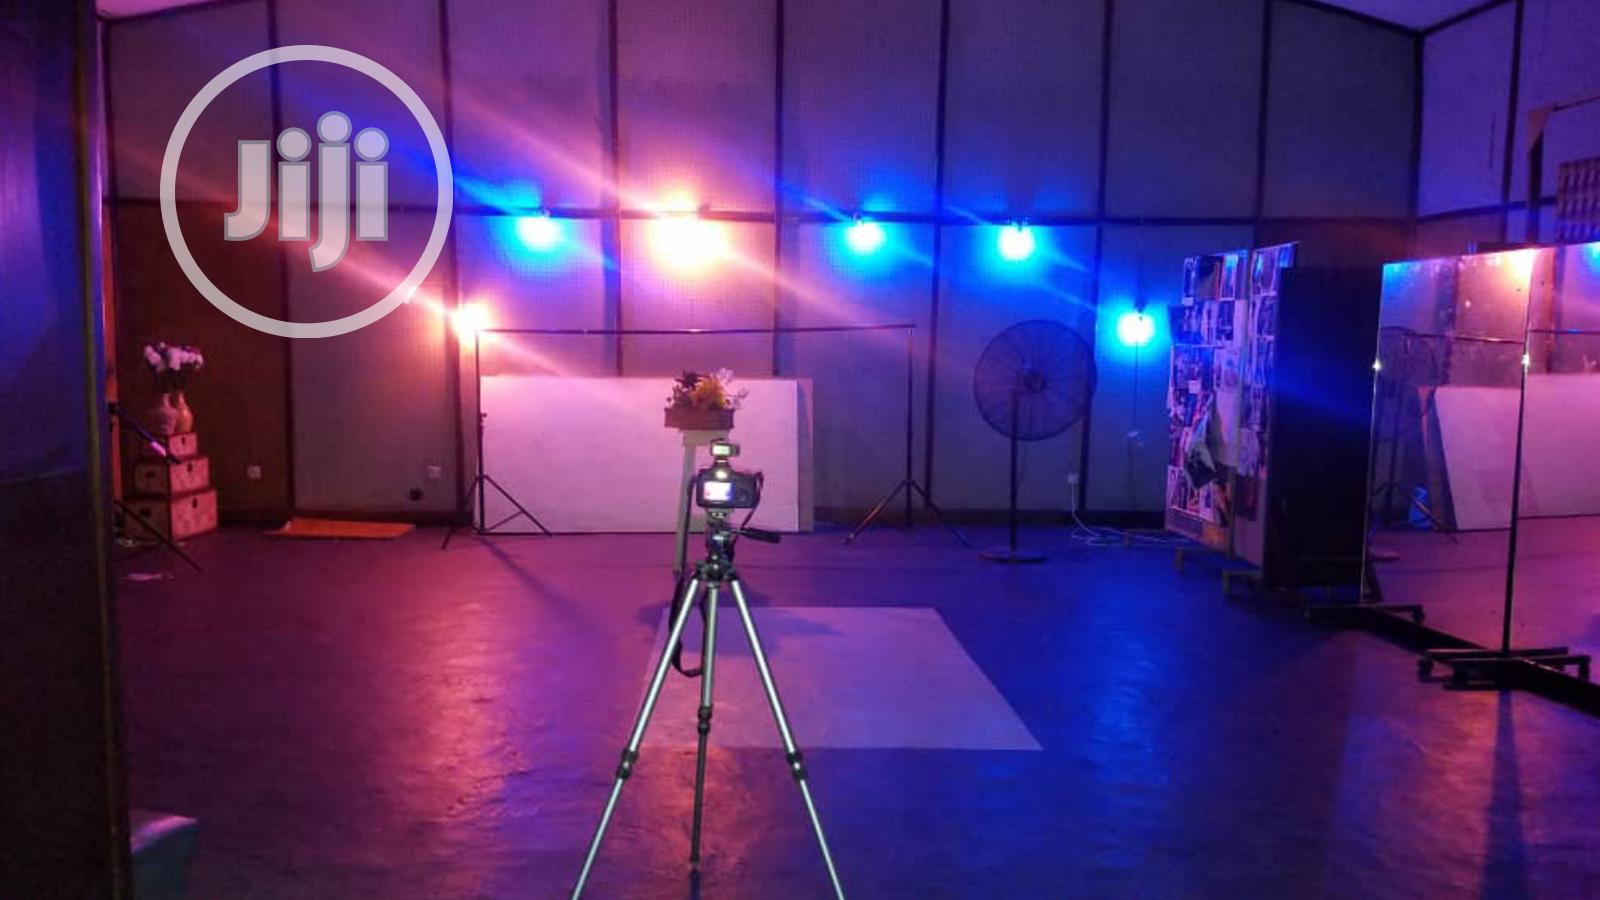 Studio Rental For Video Production And Photo Shoots